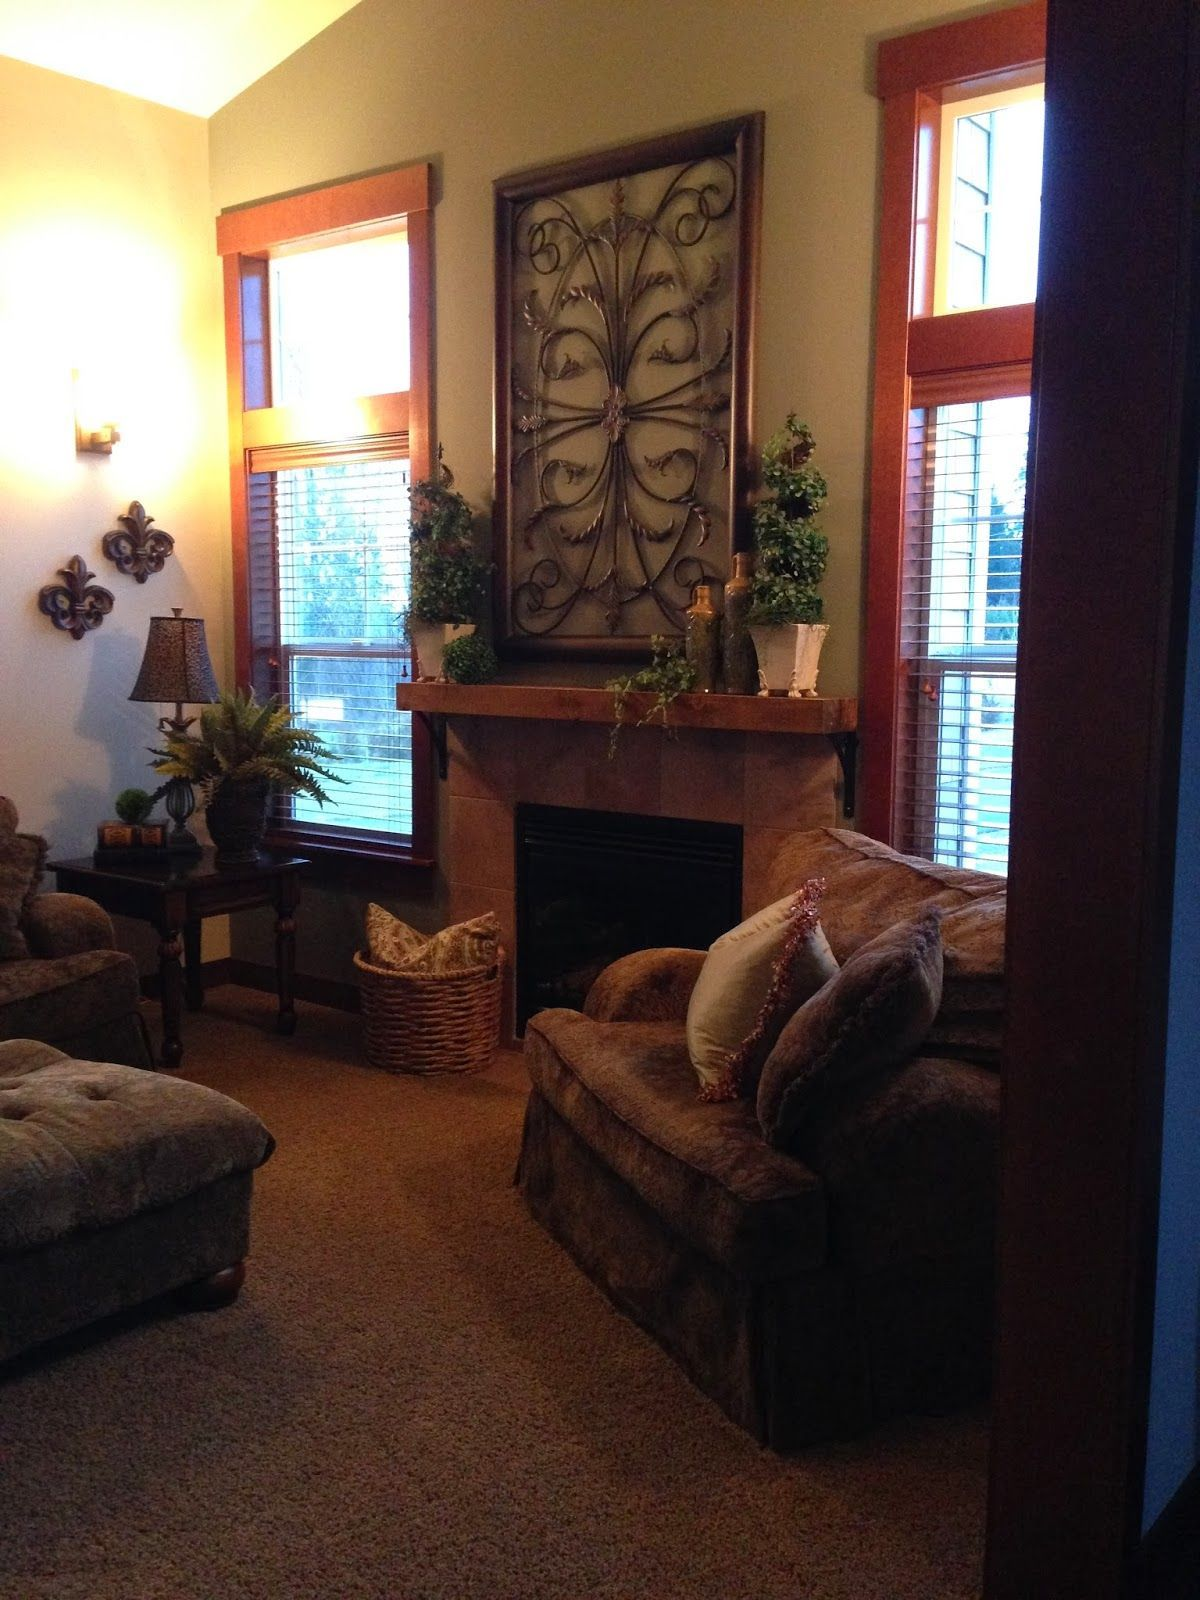 The tuscan home decorating interior house decor also remodeling in pinterest rh